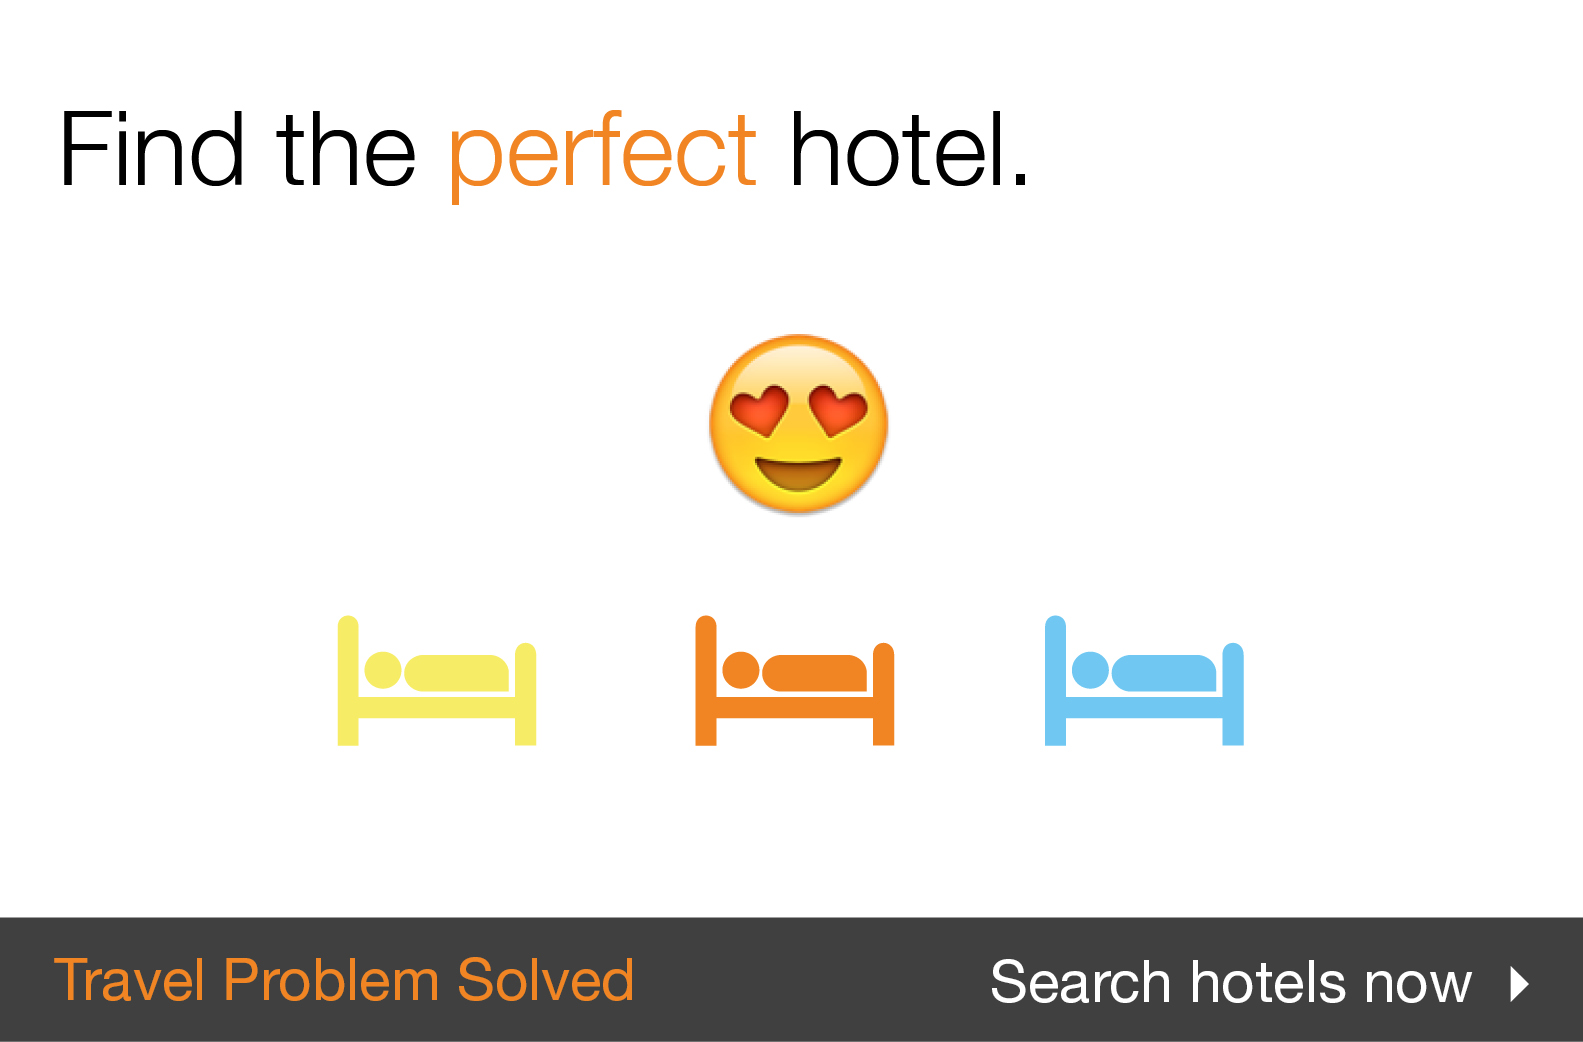 Find the perfect hotel